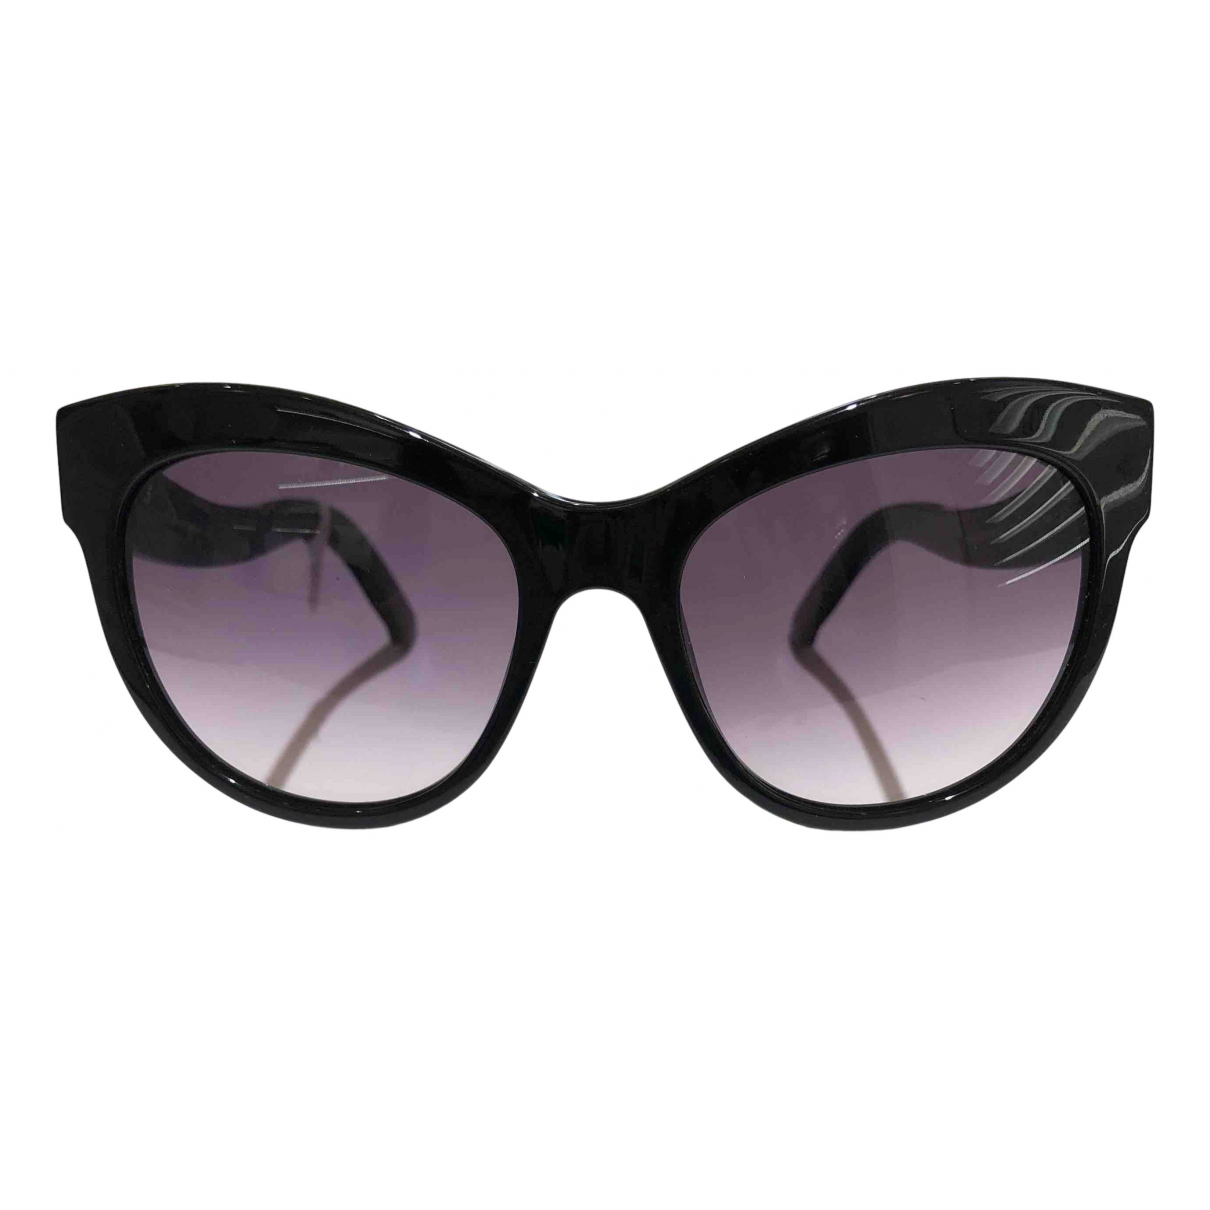 Swarovski N Black Sunglasses for Women N